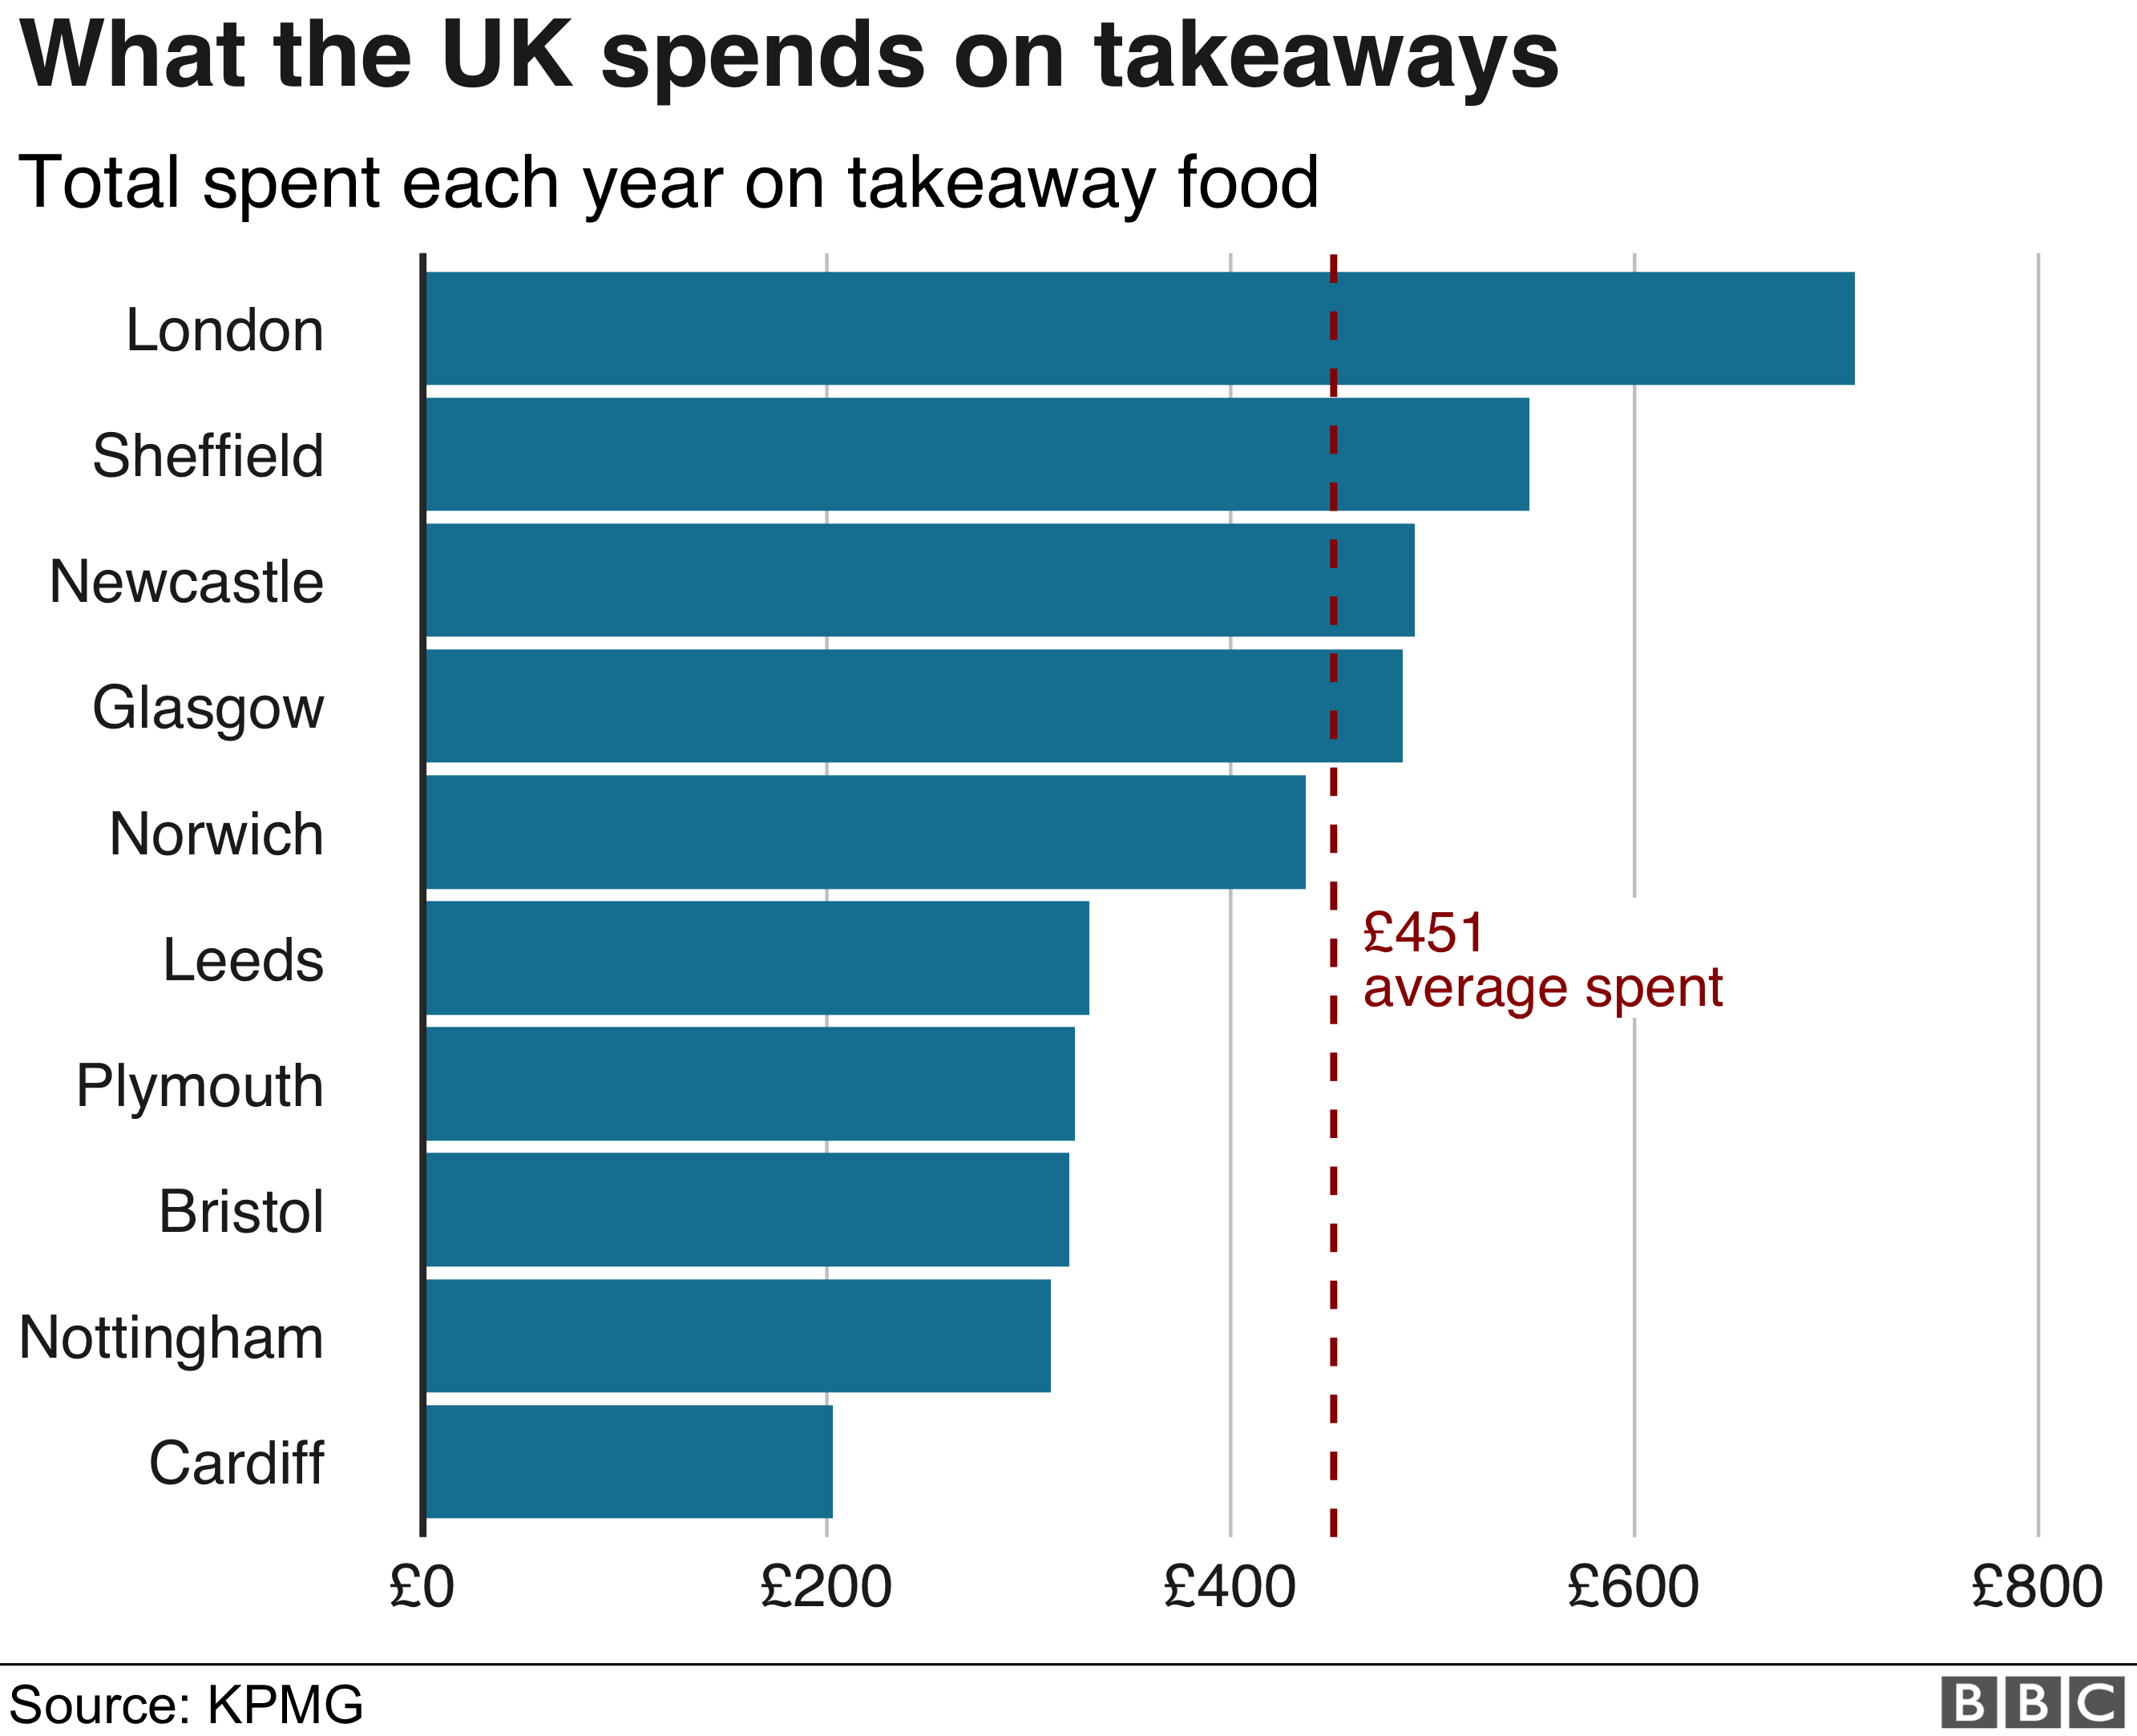 Bar chart showing that Londoners spend £709 a year on takeaways, ahead of the £451 average. People in Cardiff spend much less than average at just over £200 a year.